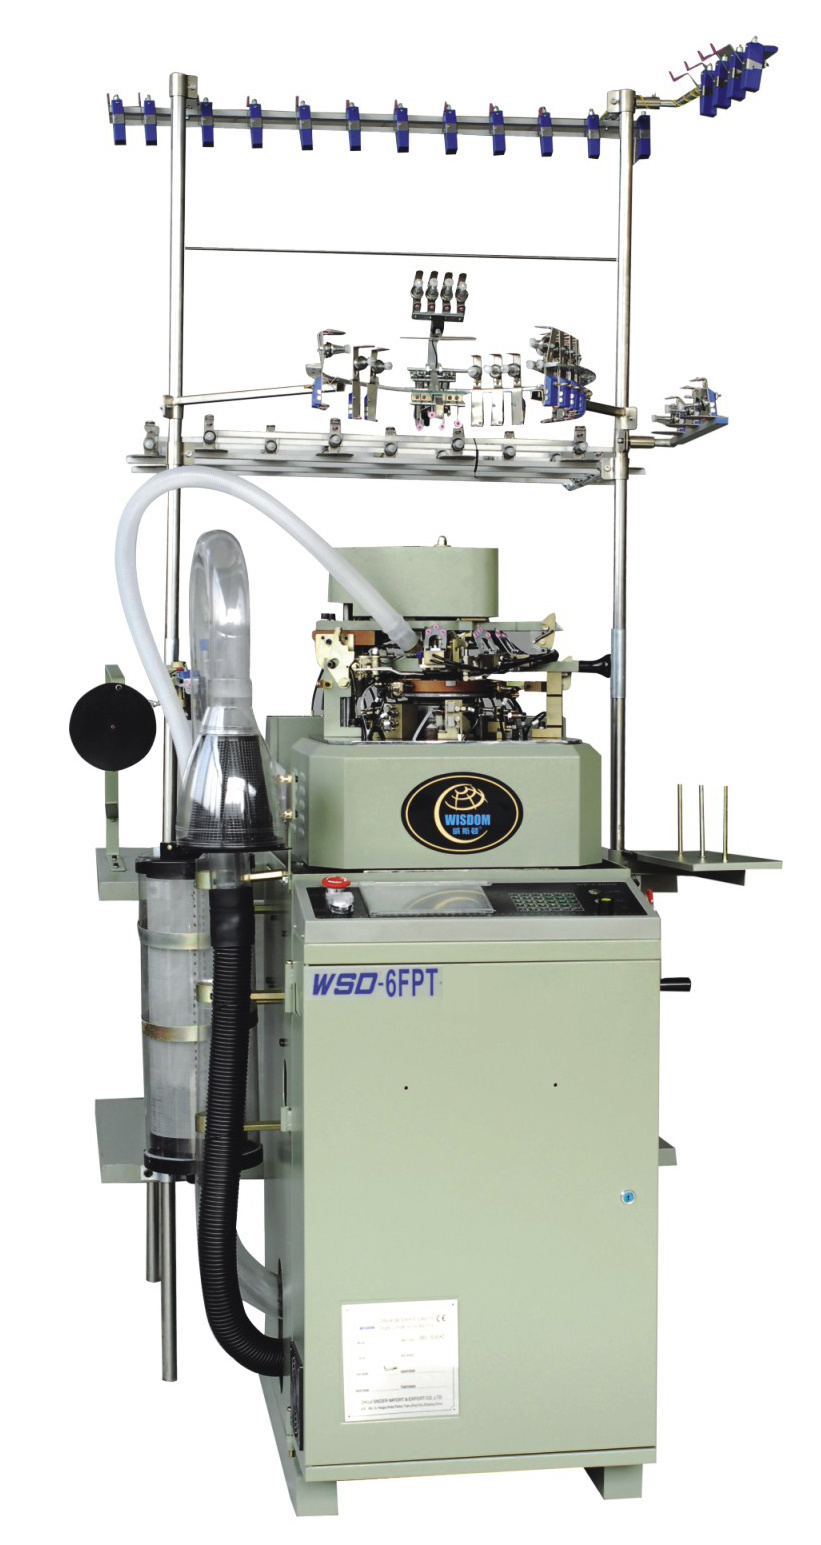 WSD-6FPT Machine for Manufacturing Socks with Automatic Computerized